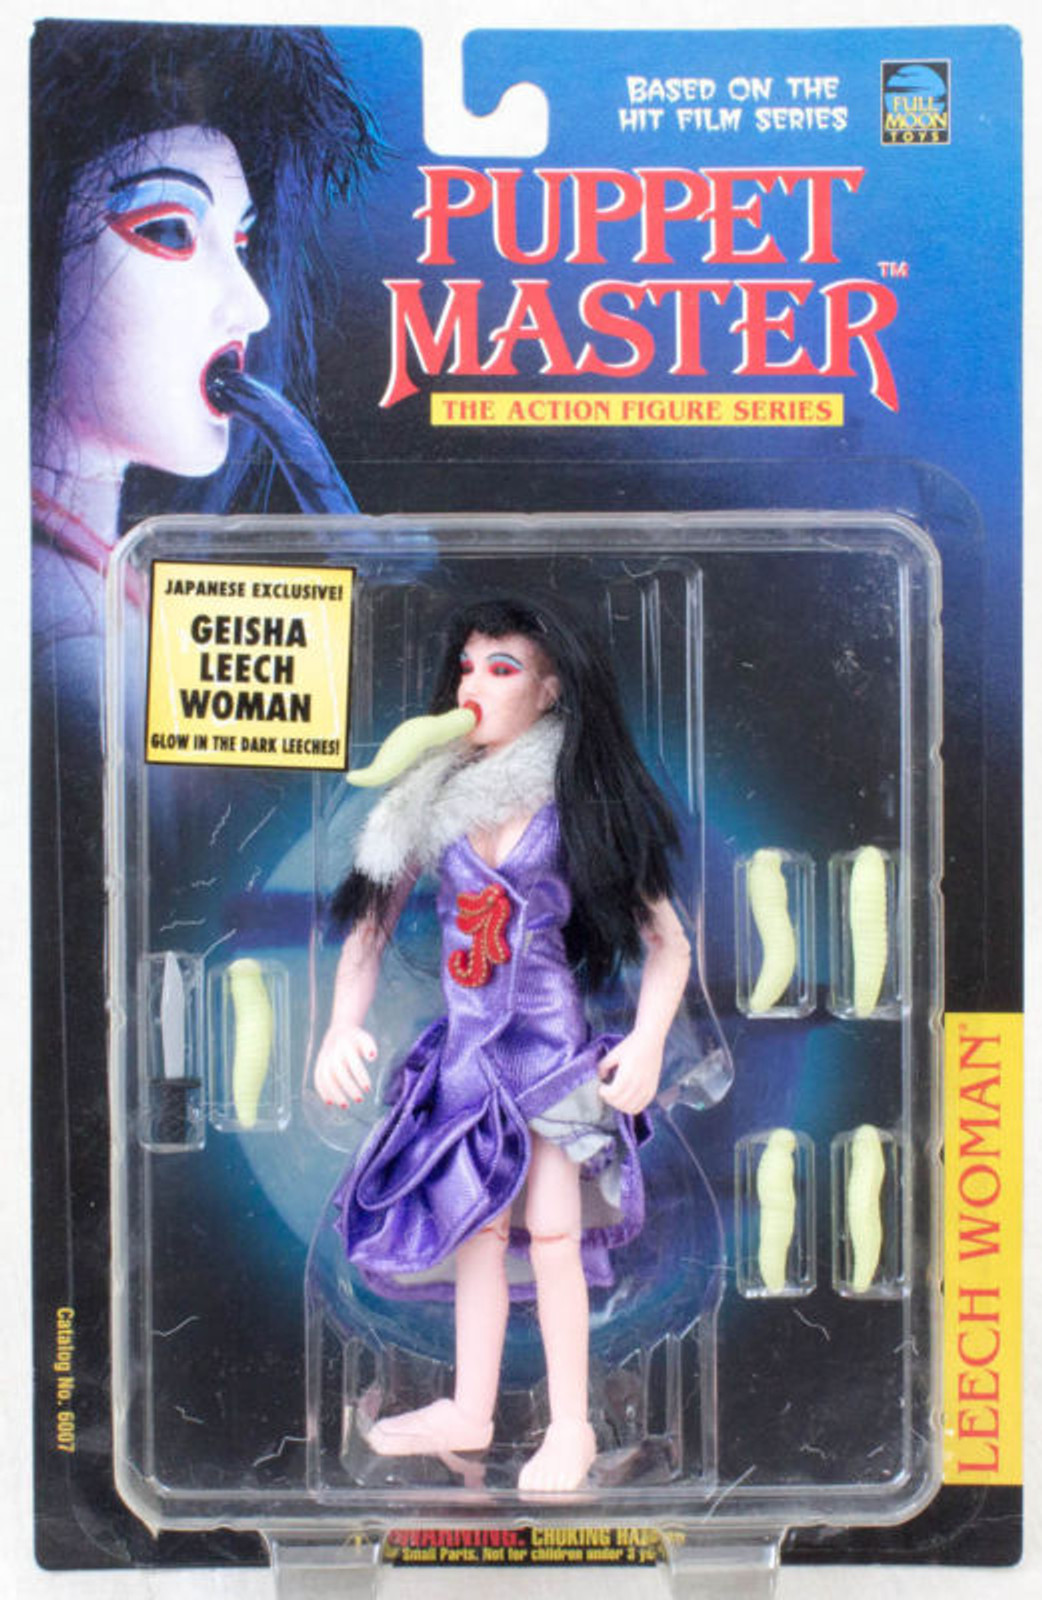 PUPPET MASTER Leech Woman Figure Purple Japanese Exclusive Geisha Full Moon Toys